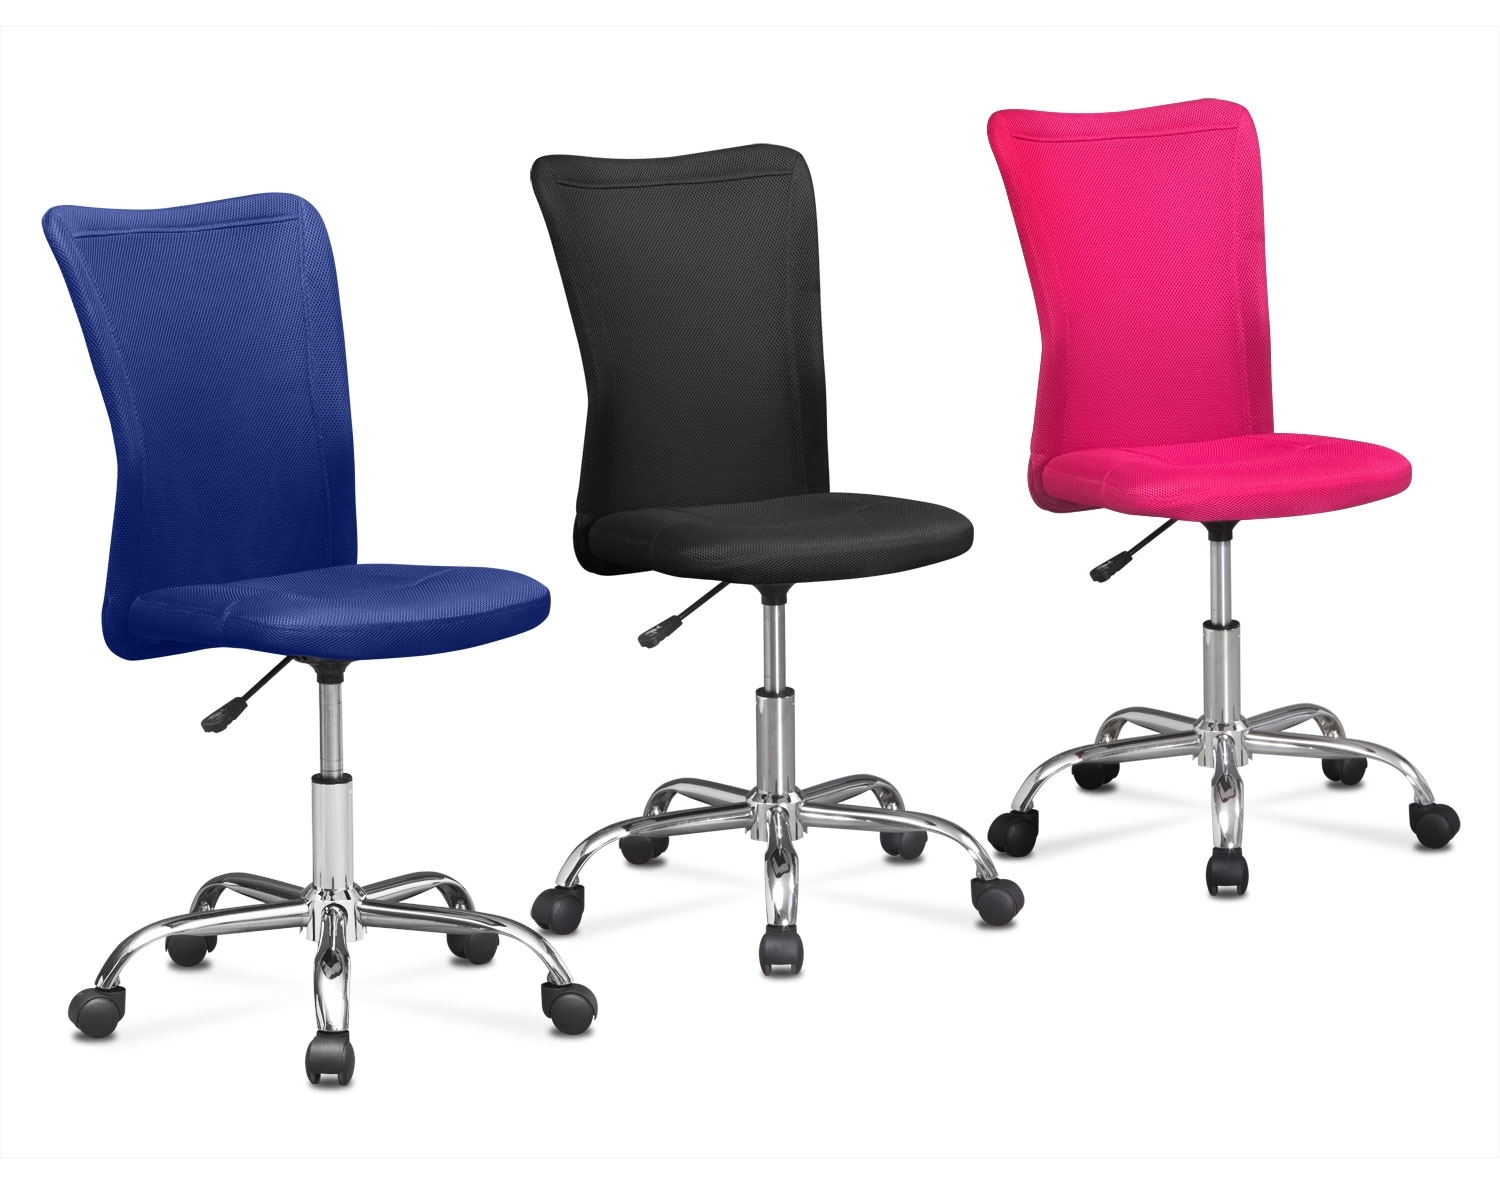 The Mist Desk Chair Collection